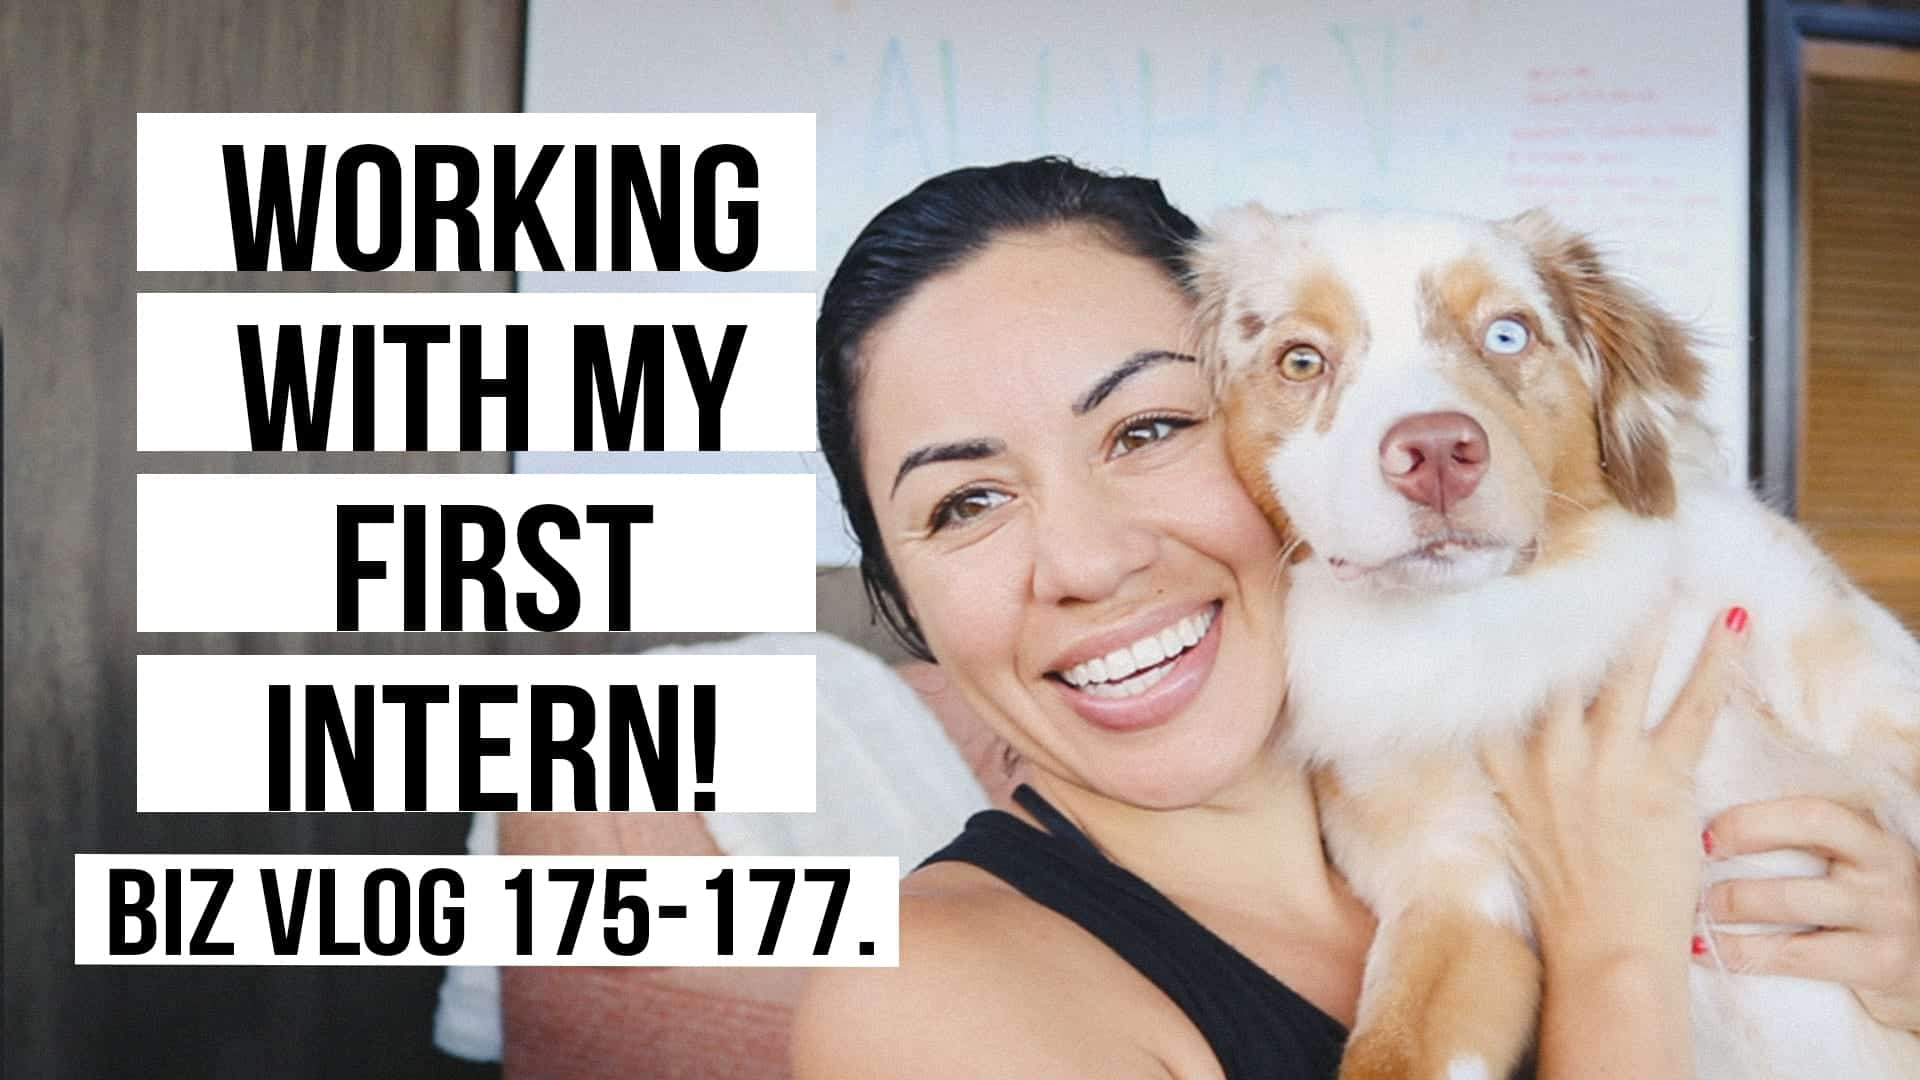 WORKING WITH MY FIRST INTERN! BIZ VLOG 175-177.